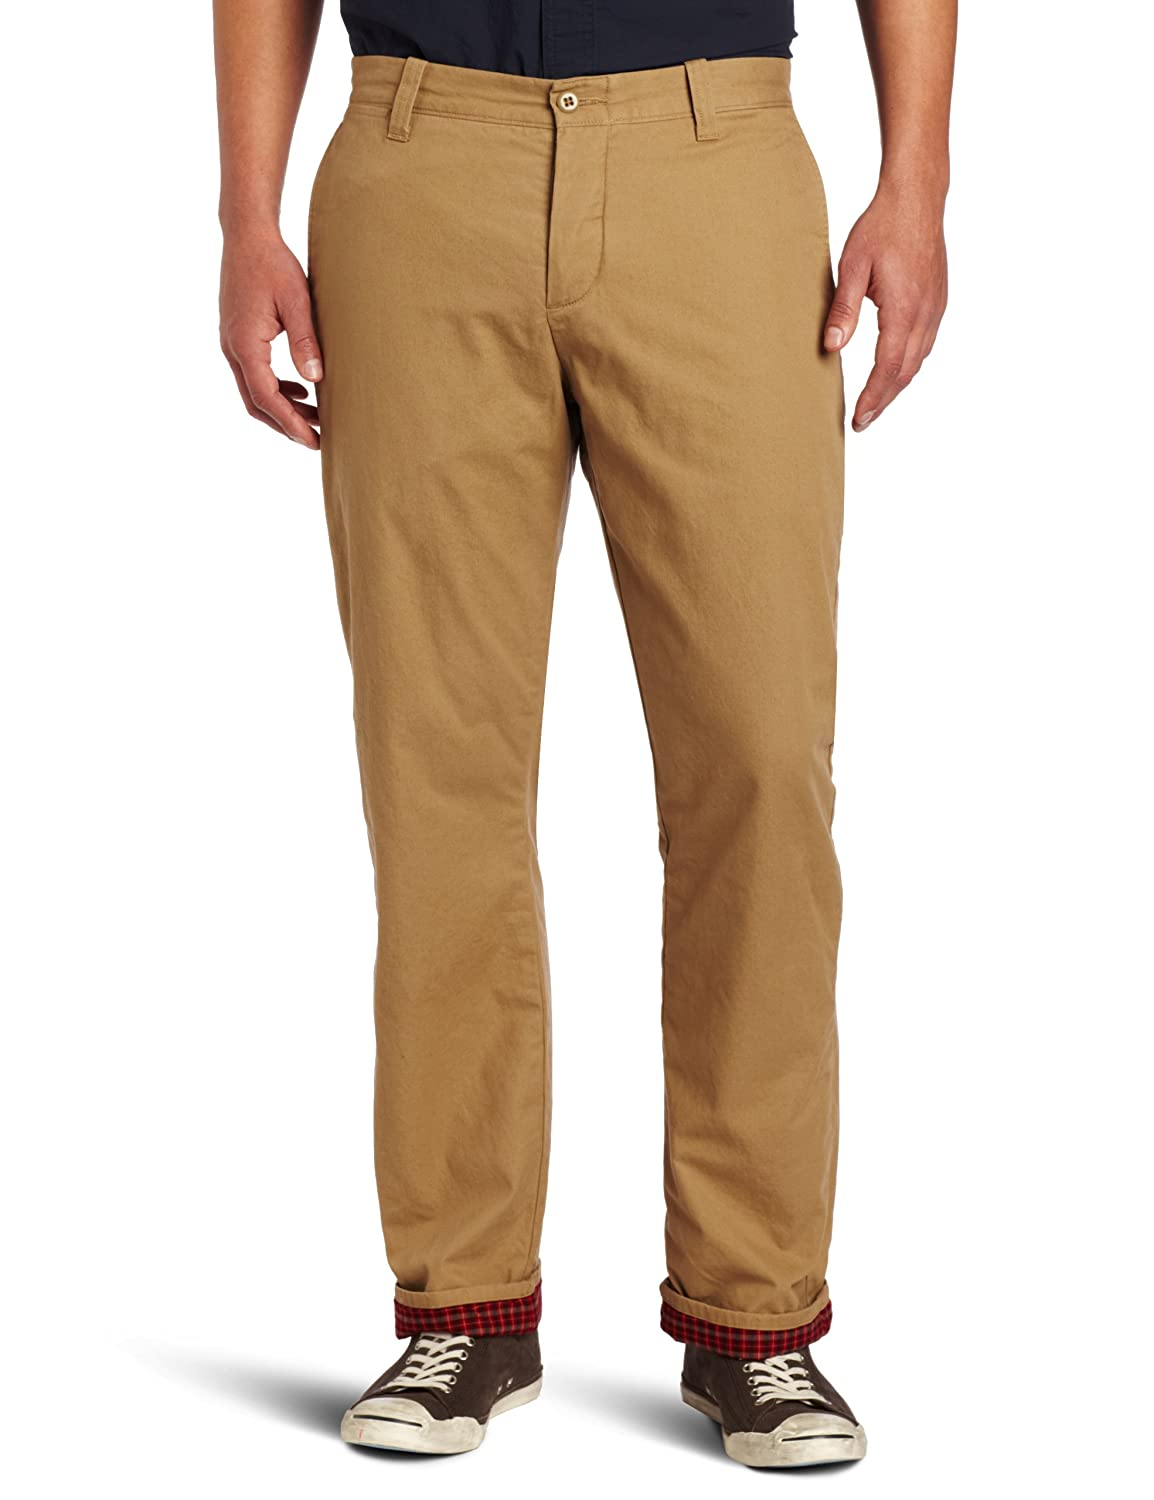 Dockers Mens Flannel Lined Ultimate Khaki D2 Flat Front Pant, New British Khaki - discontinued, 30W x 30L at Amazon Mens Clothing store: